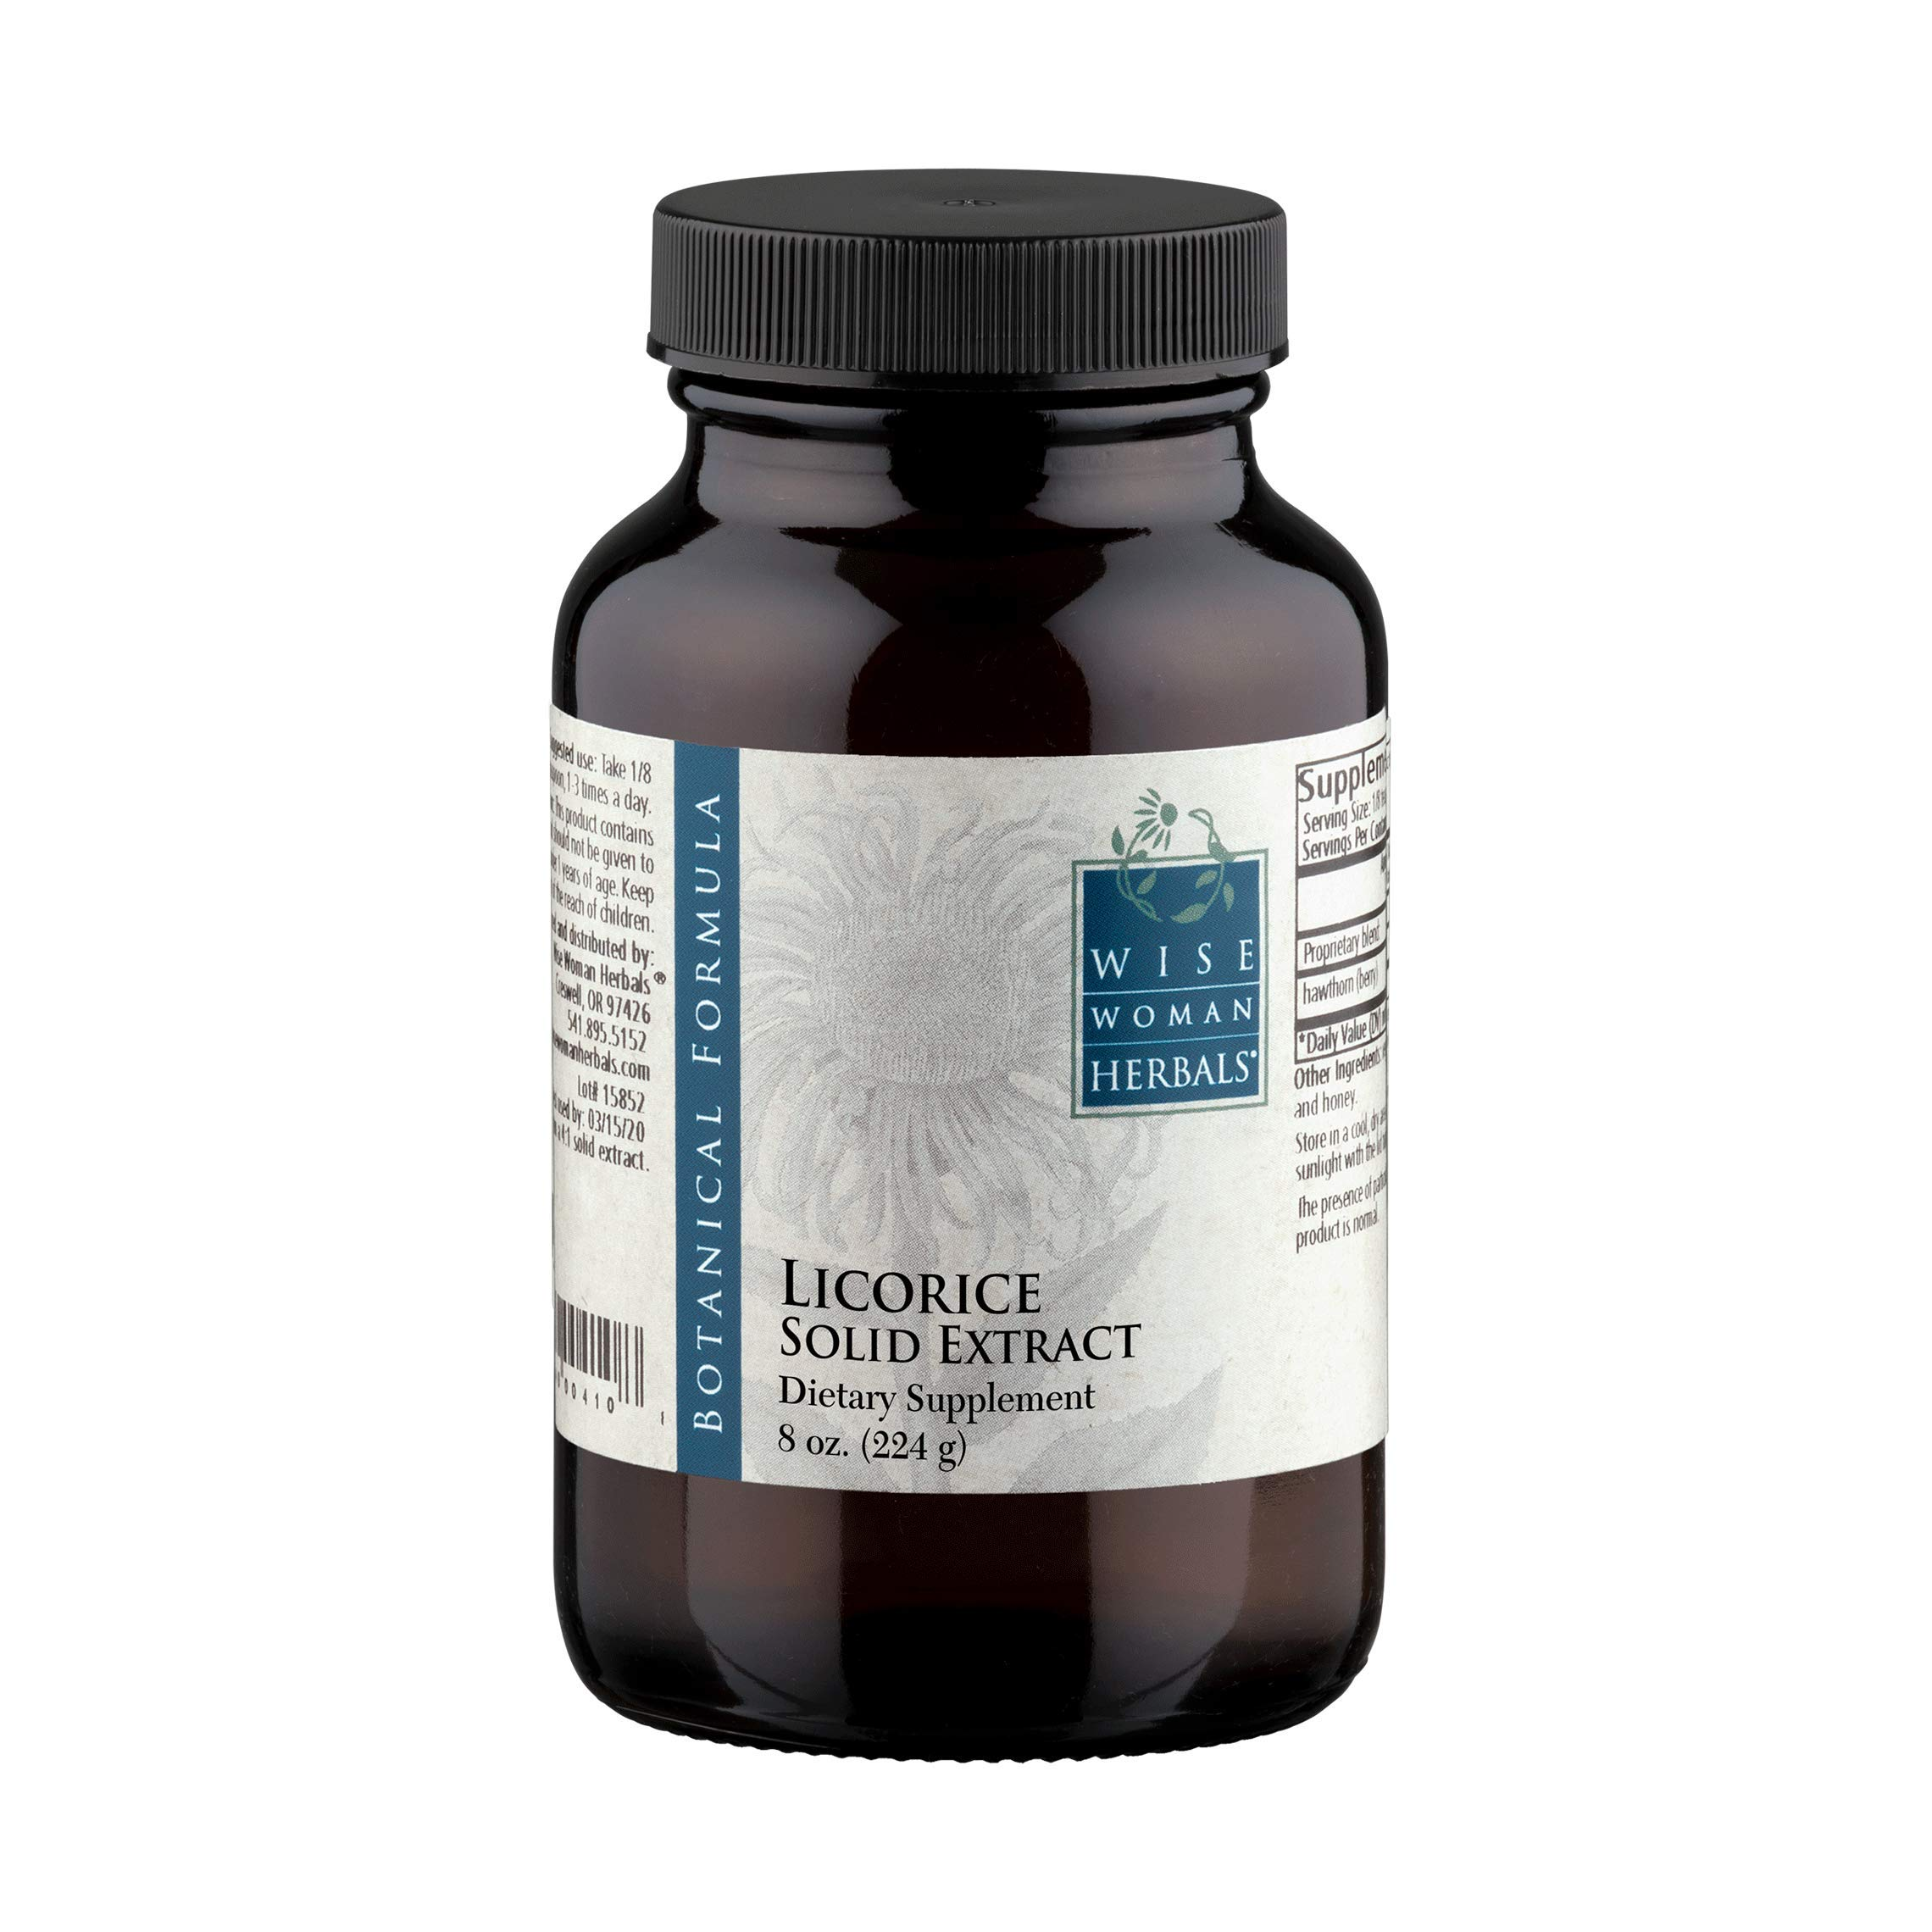 Wise Woman Herbals – Licorice Solid Extract – 8 oz - for Immune Support - Promotes Normal Healthy Liver and Adrenal Gland Function – Supports Digestive Health, Upset Stomach and Indigestion by Wise Woman Herbals (Image #1)